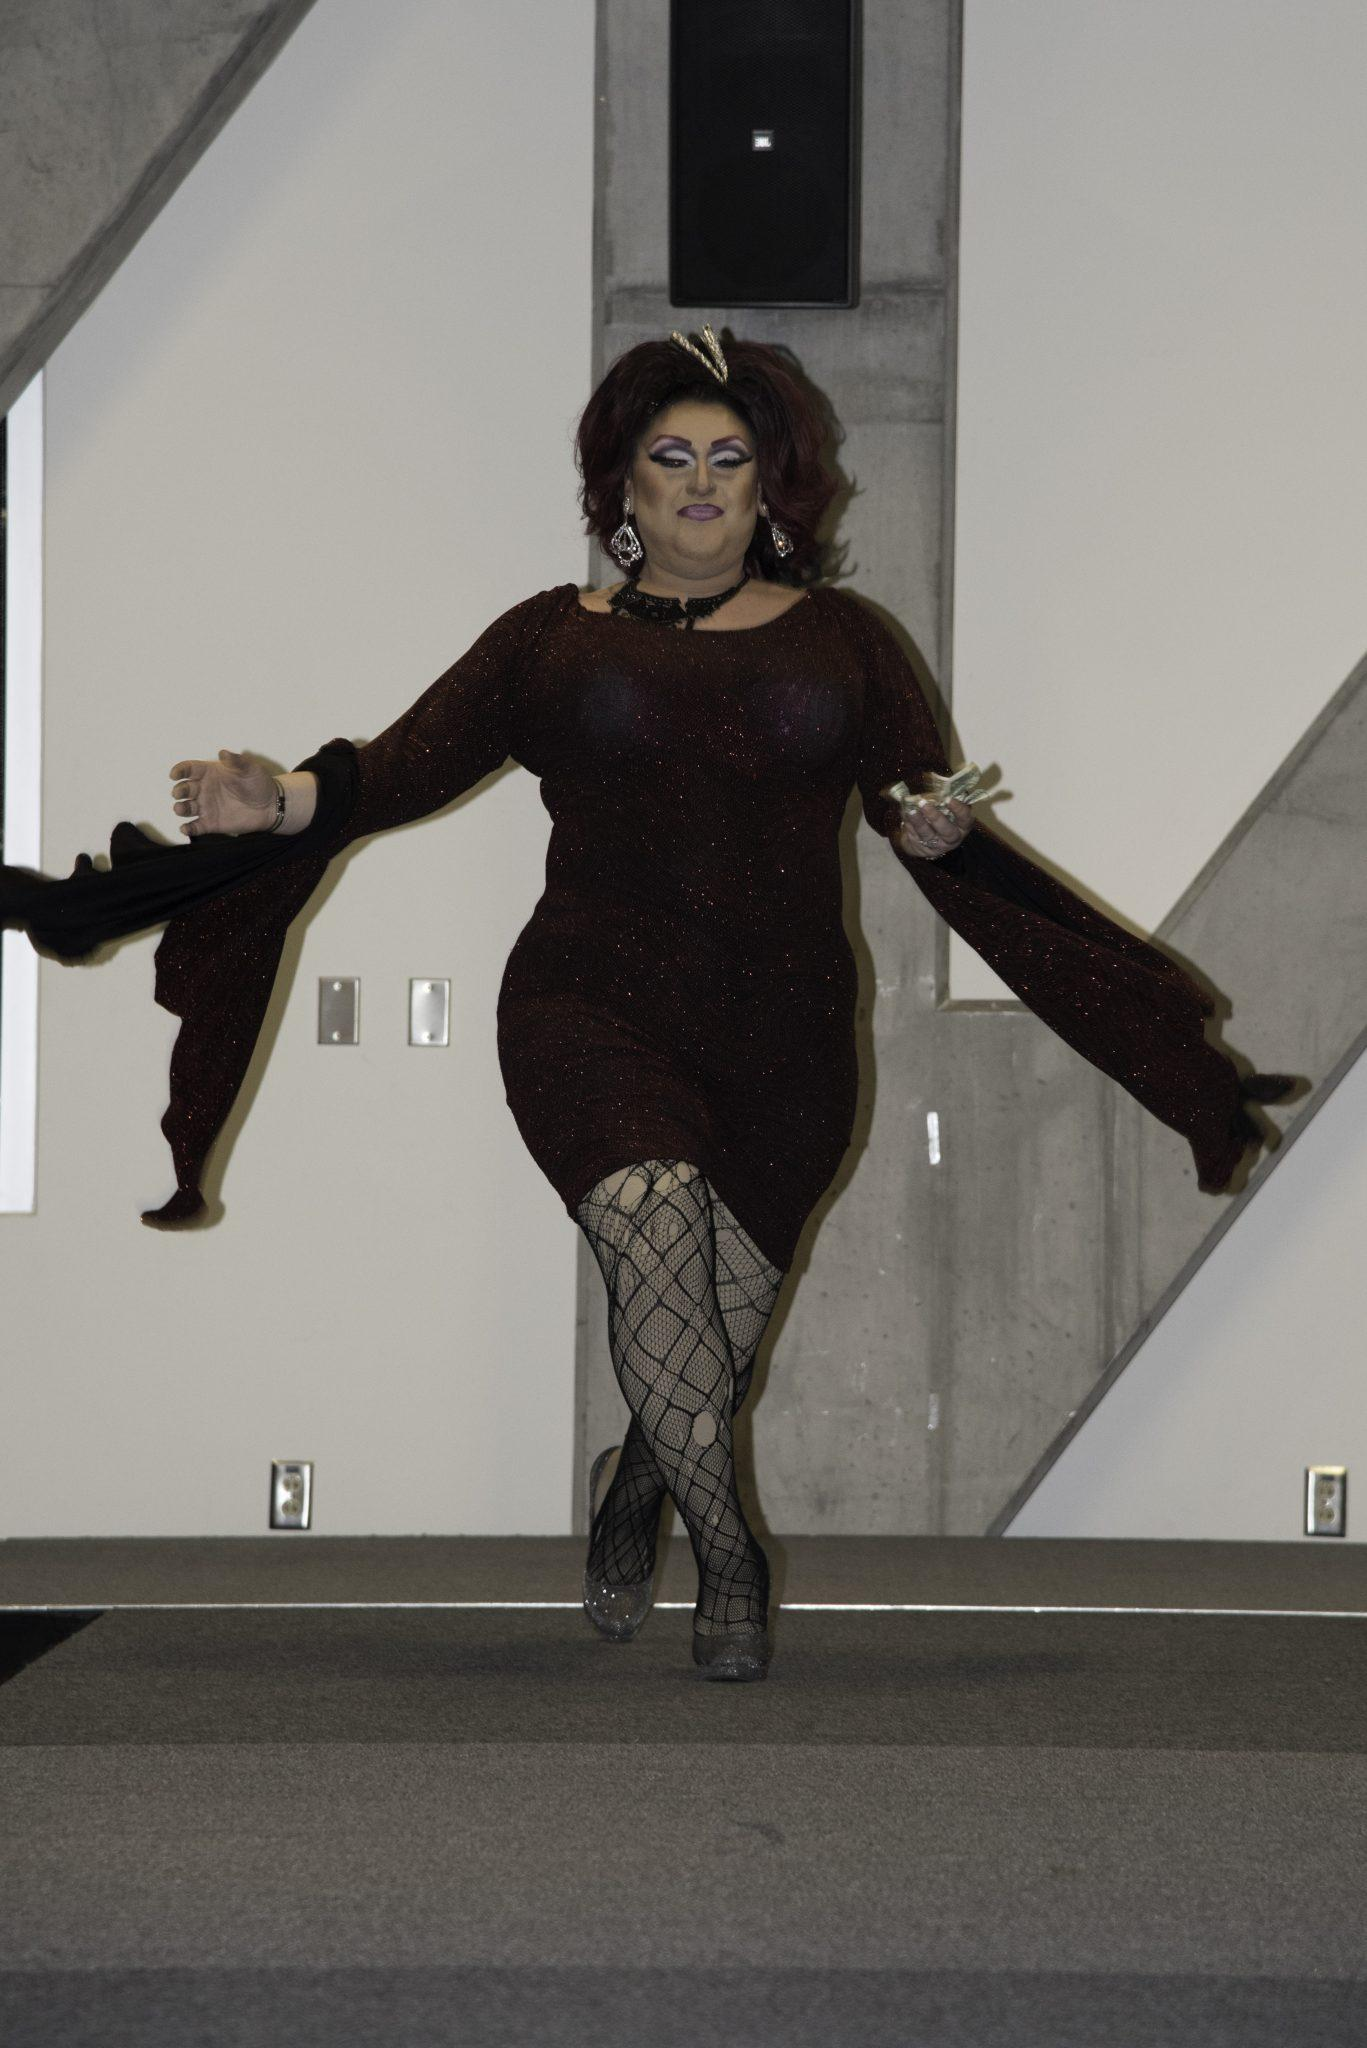 Drag queen Courtney Nicole WildFrost performing at the Diversity Celebration DragShow. The event was a part of Appalachian State's Diversity Celebration and featured a performance by Stacy Layne Mathews of season 3 of Rupaul's Drag Race.